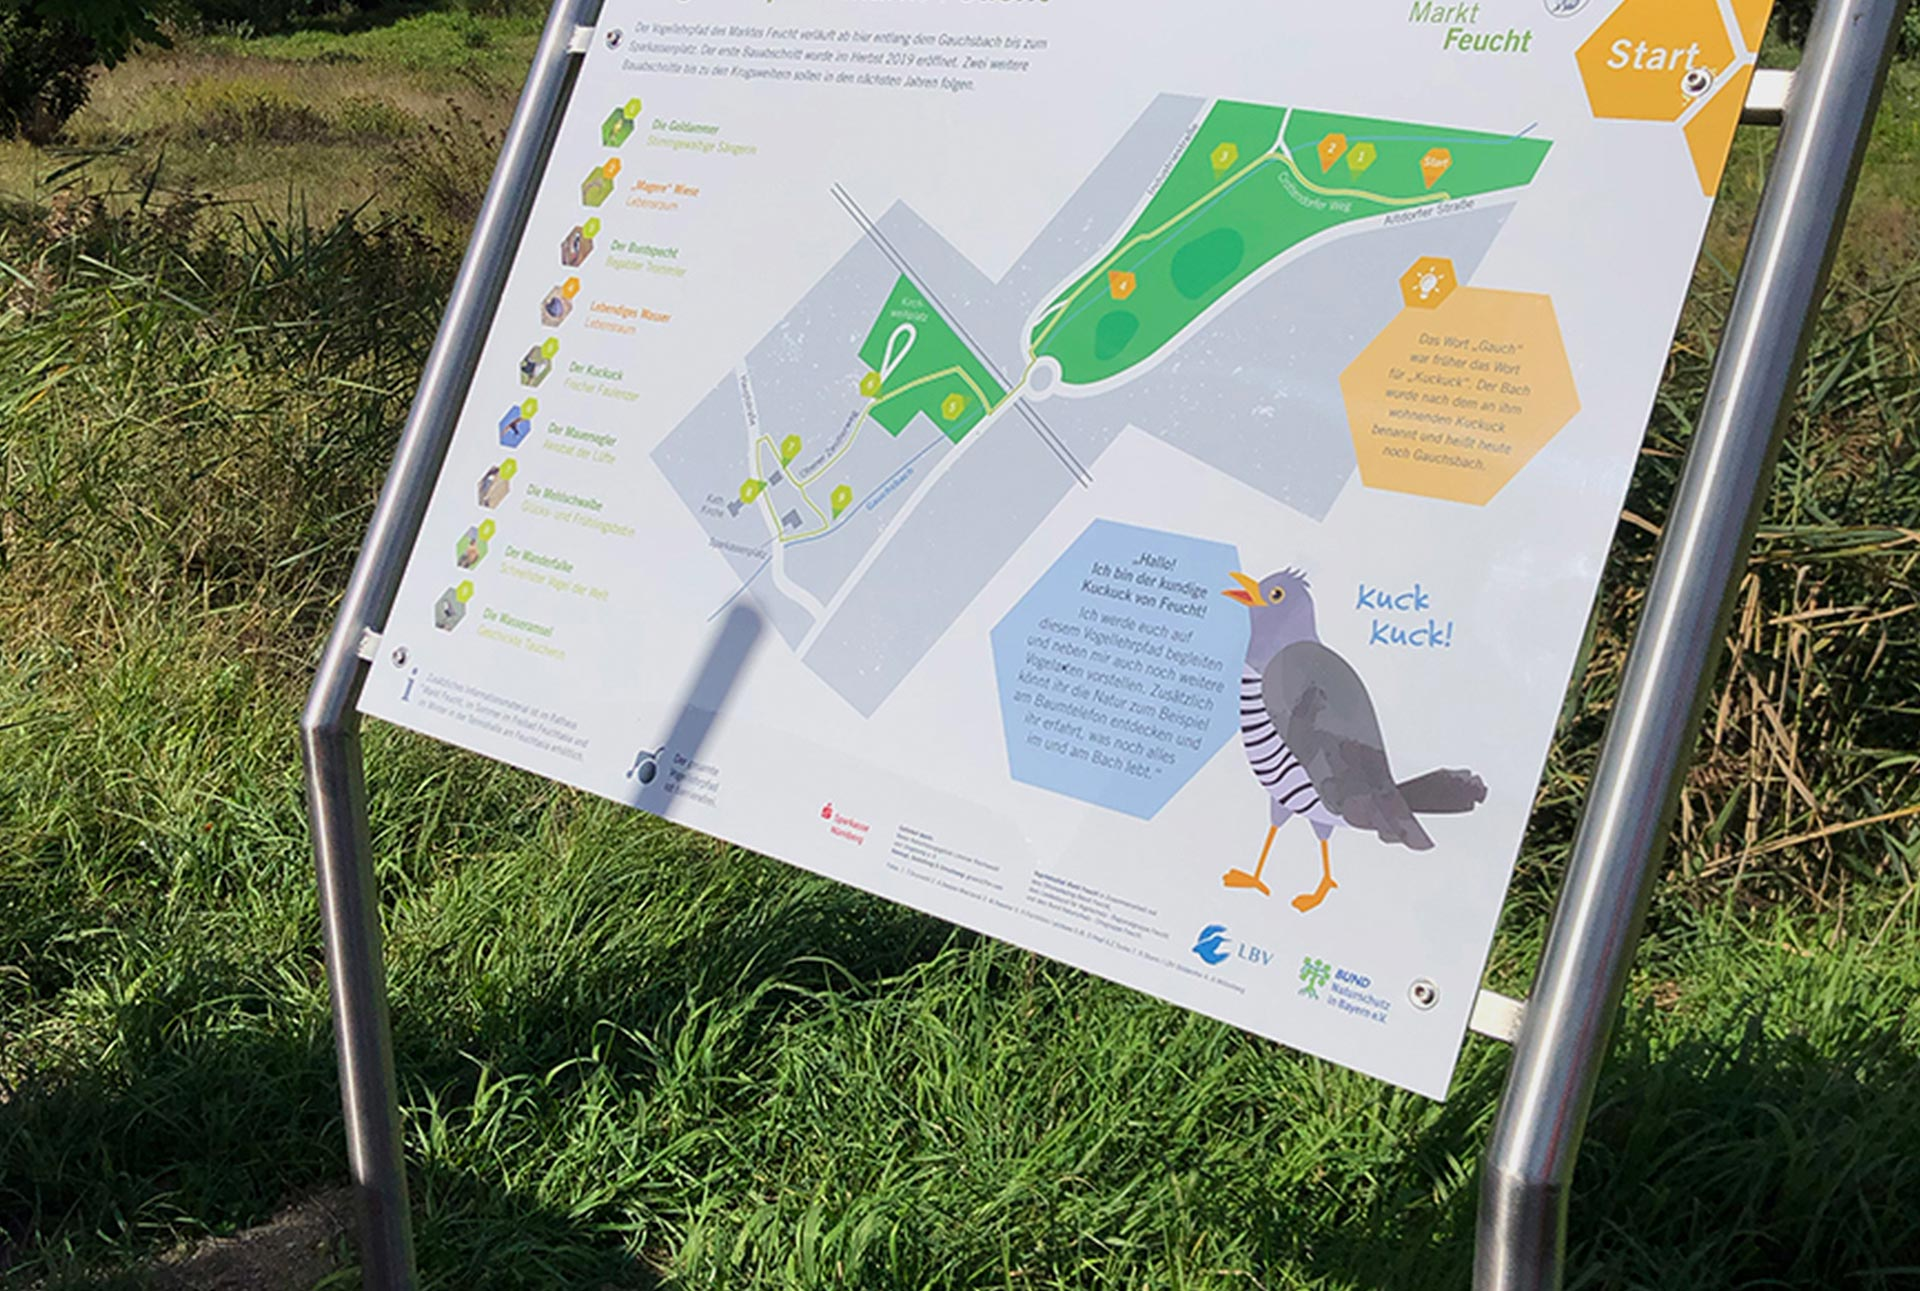 Information boards for nature trails